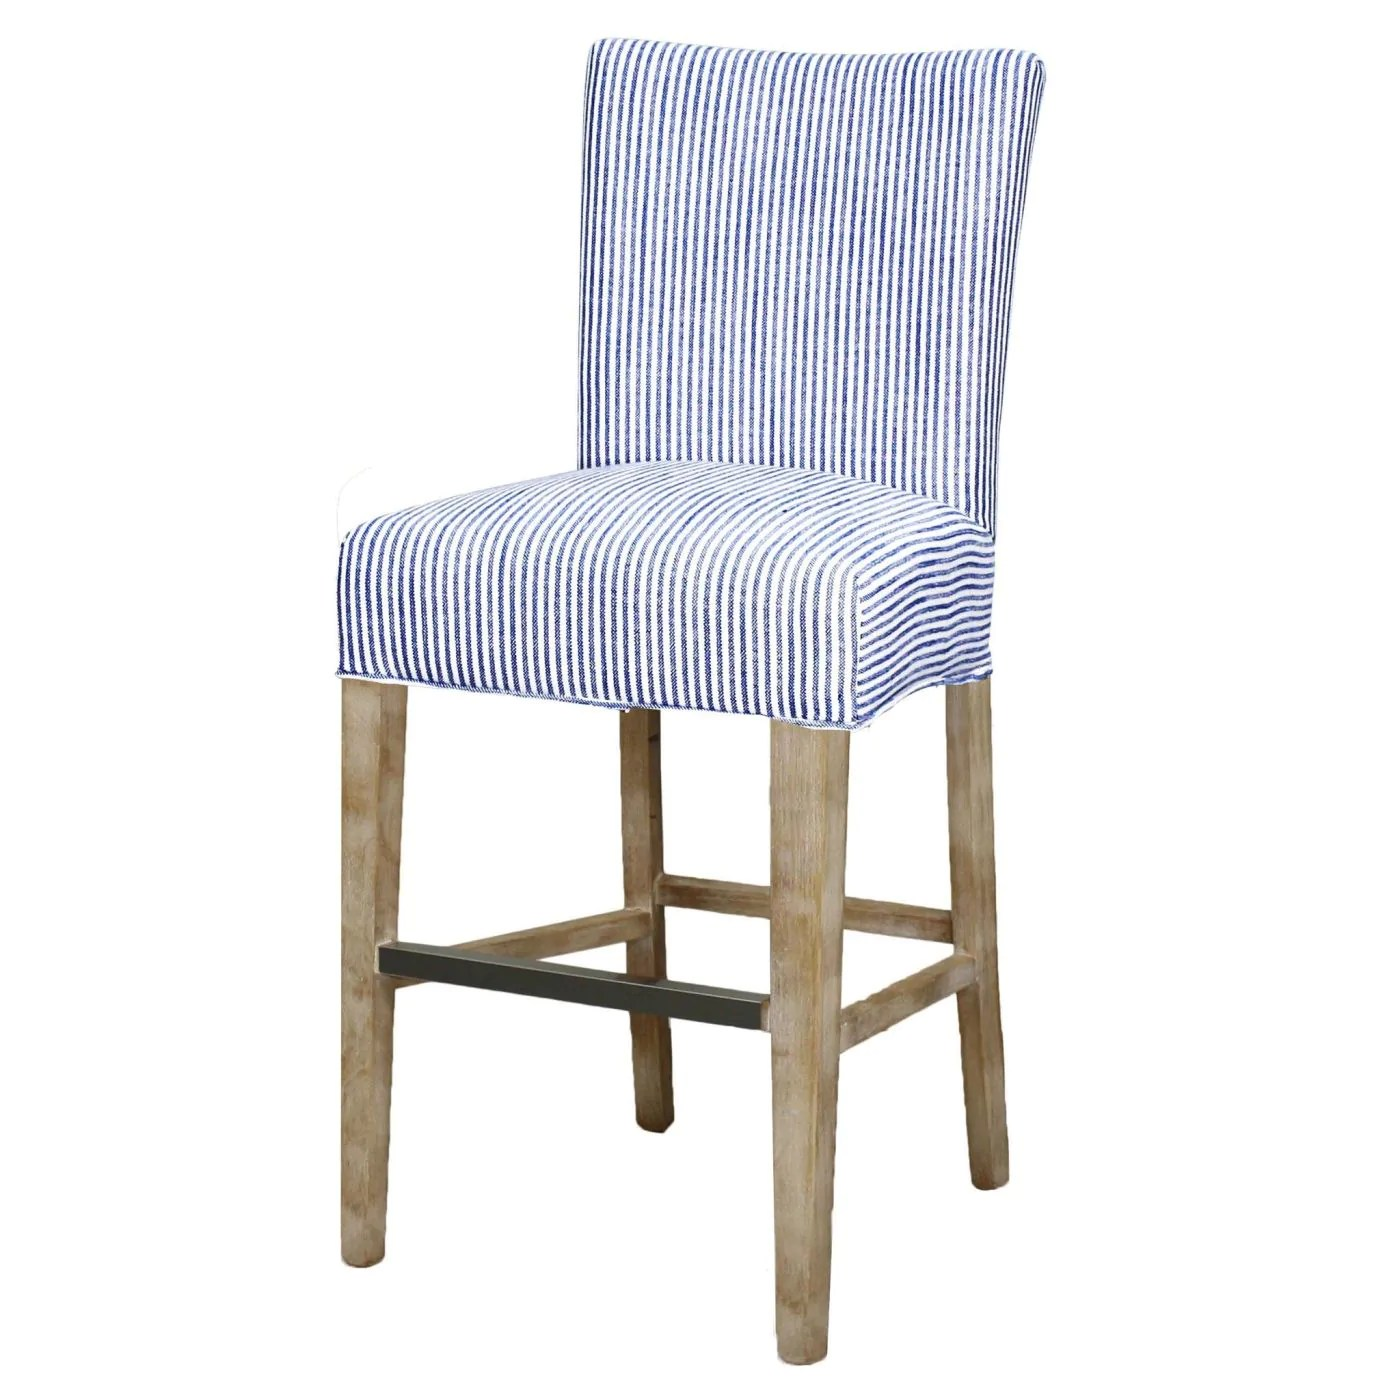 bar stool chair legs computer chairs amazon new pacific direct milton fabric natural wood